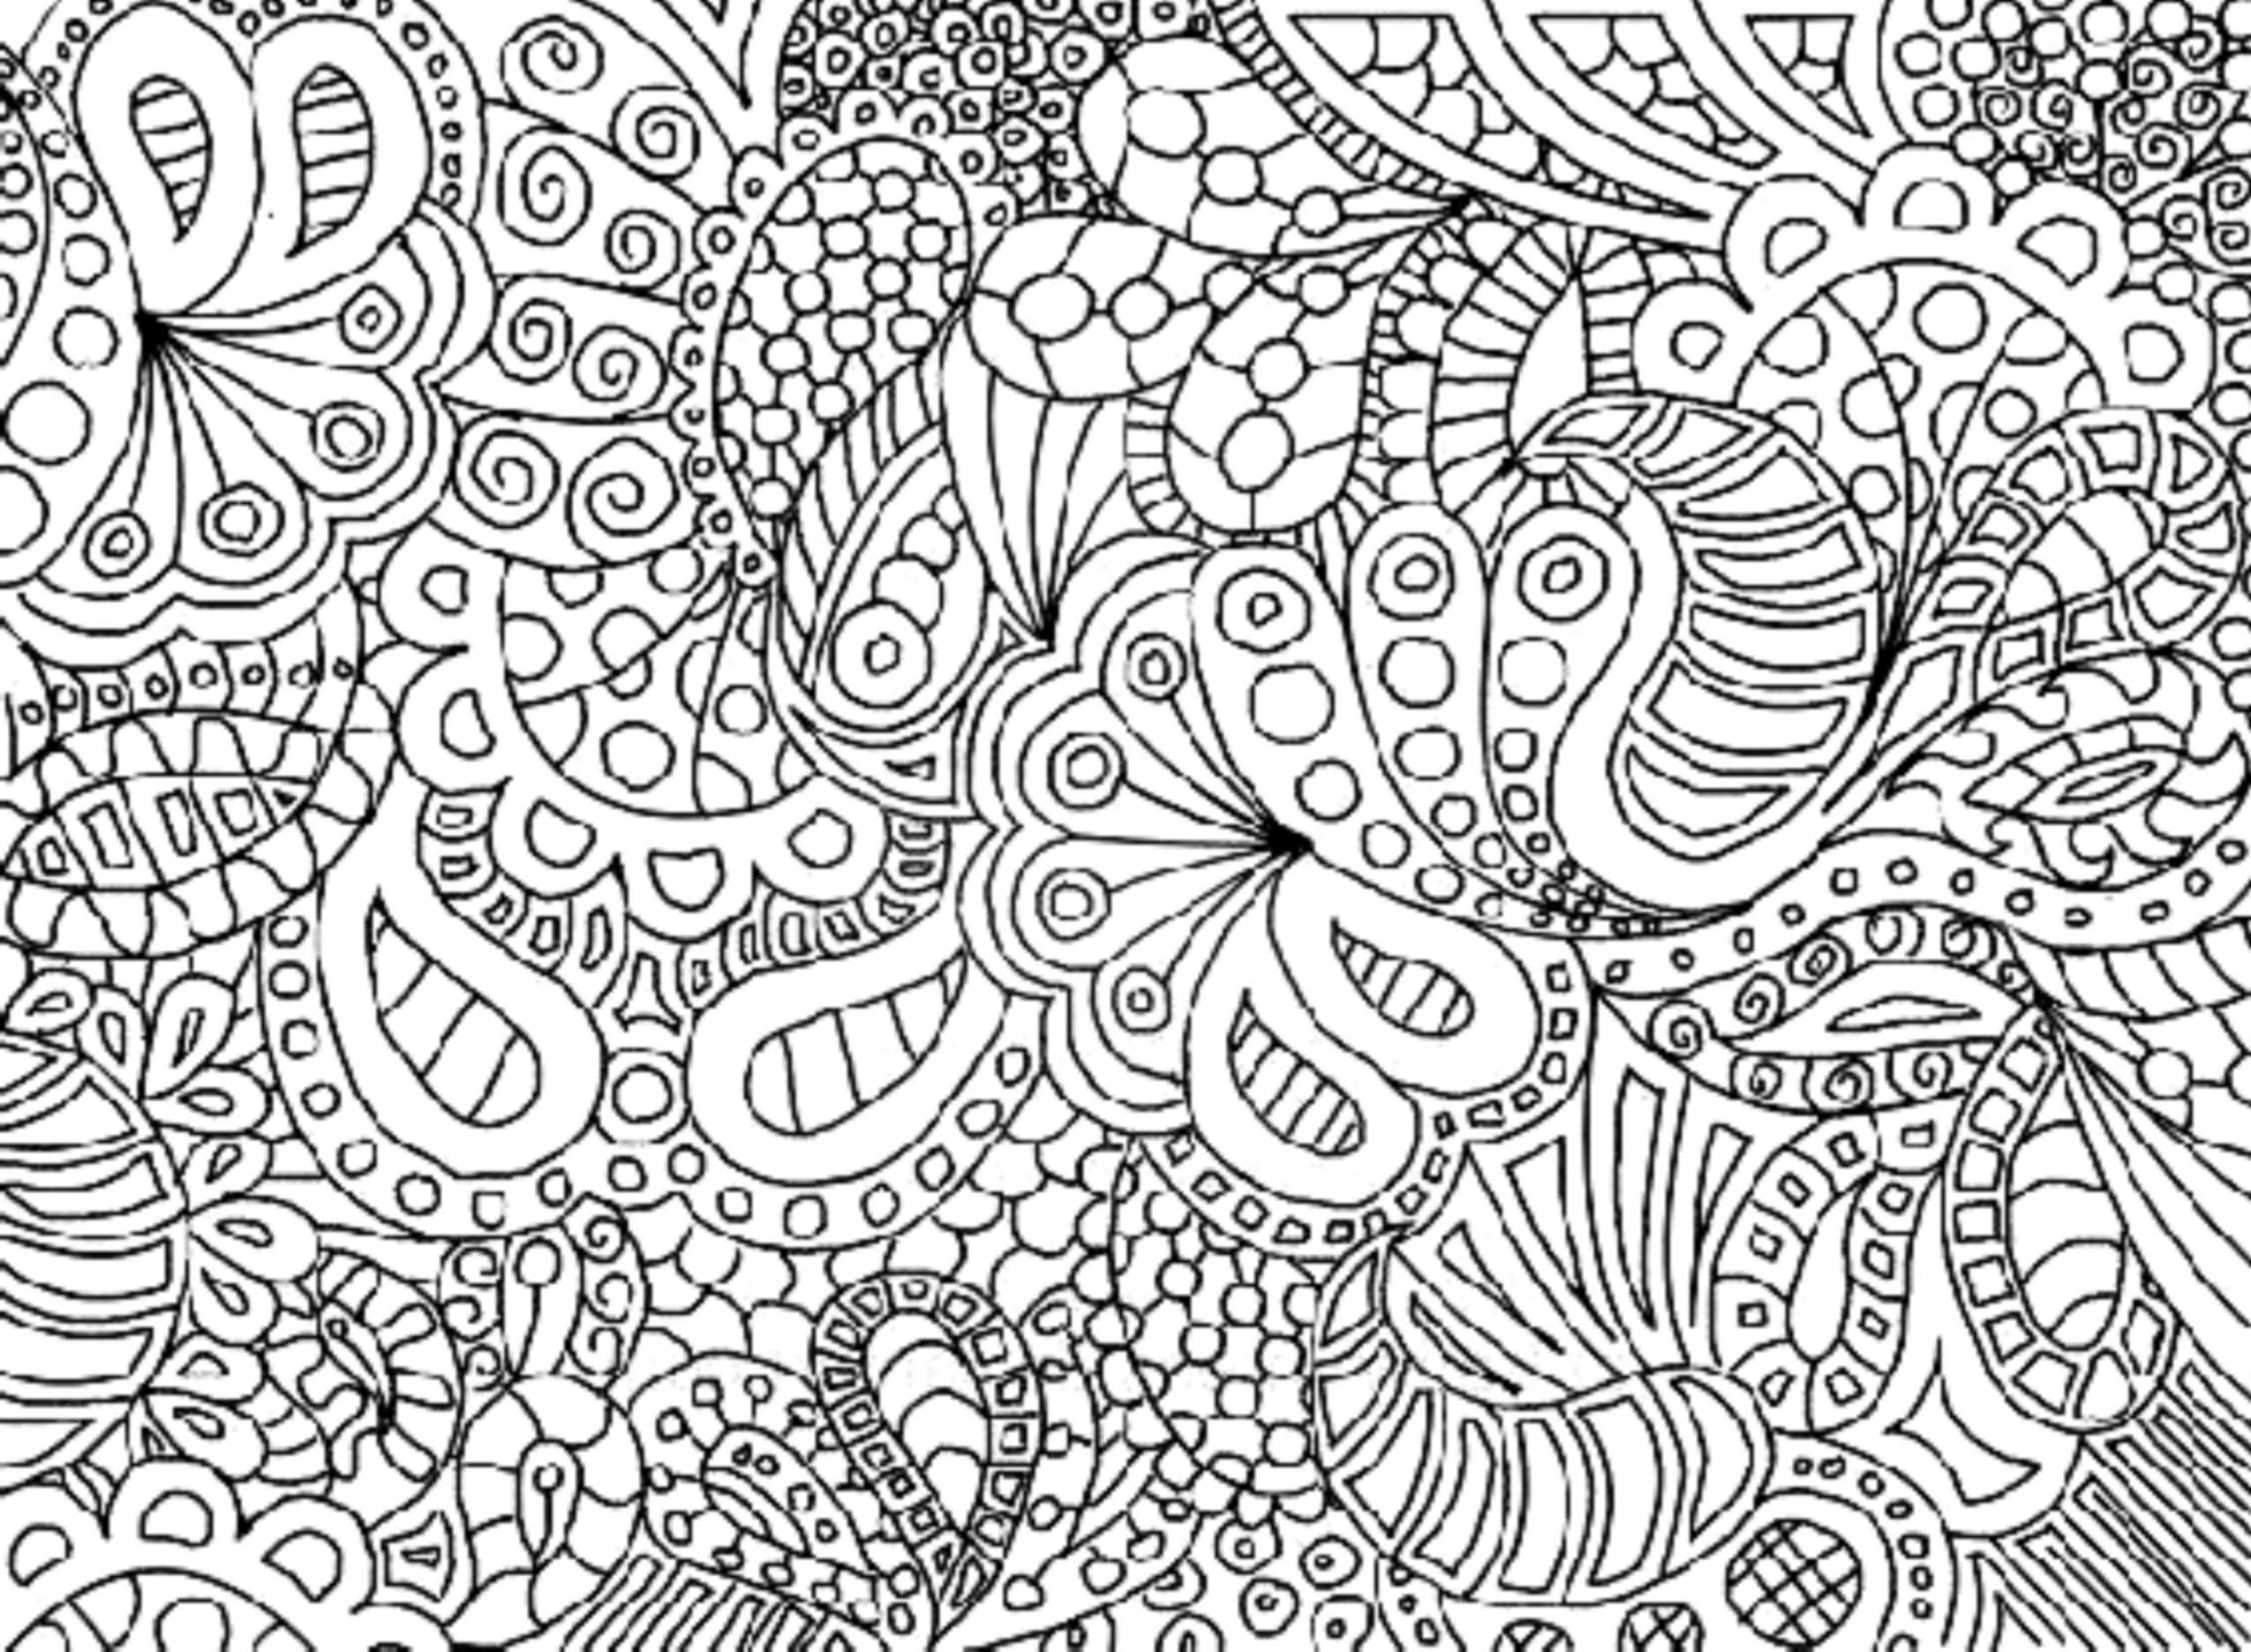 Print download complex coloring pages for kids and adults for Free printable coloring pages for adults and kids